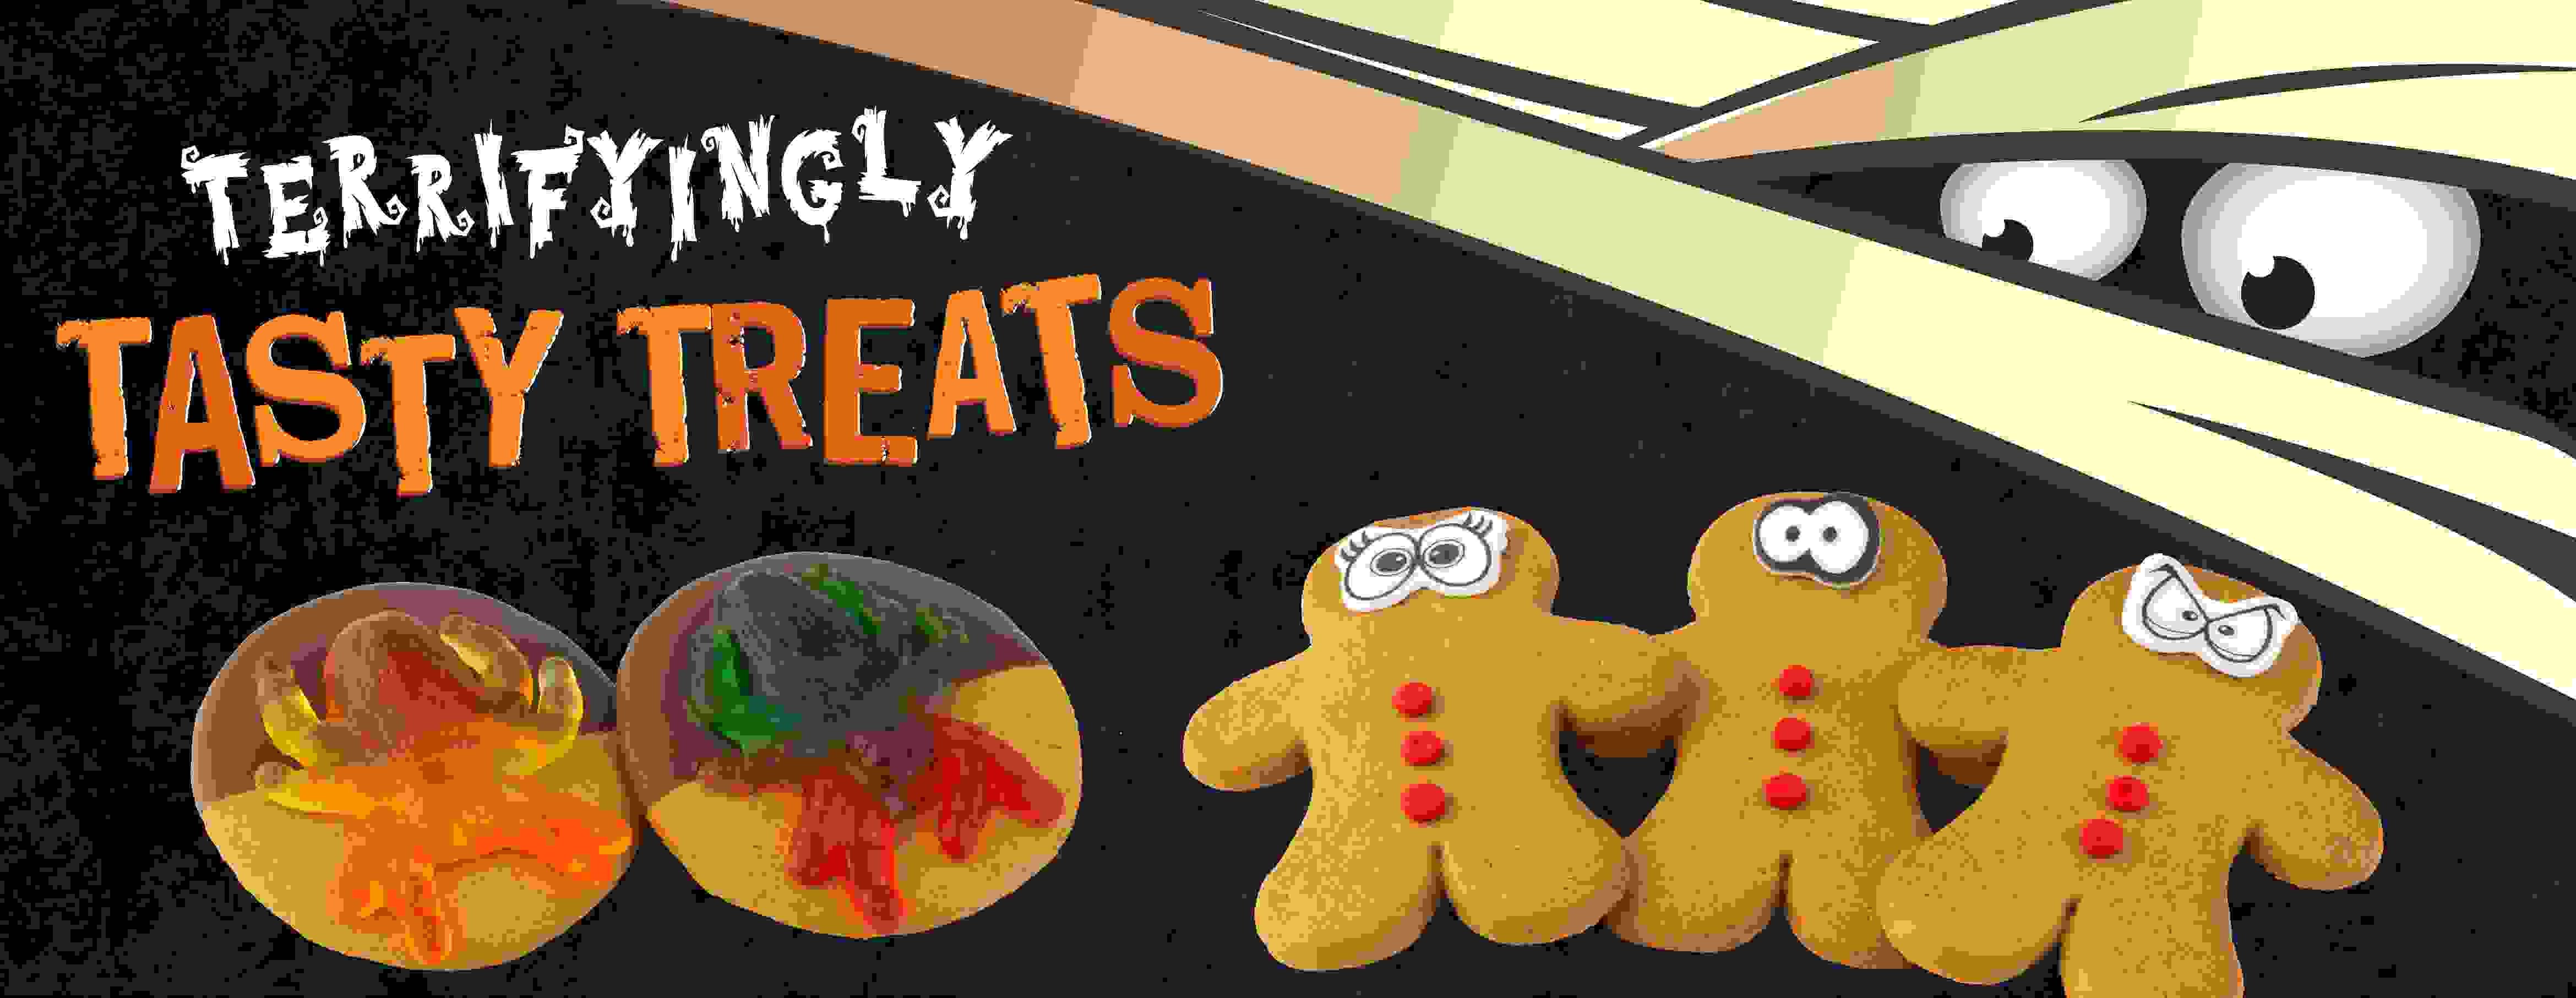 halloween treats web banner-01.png